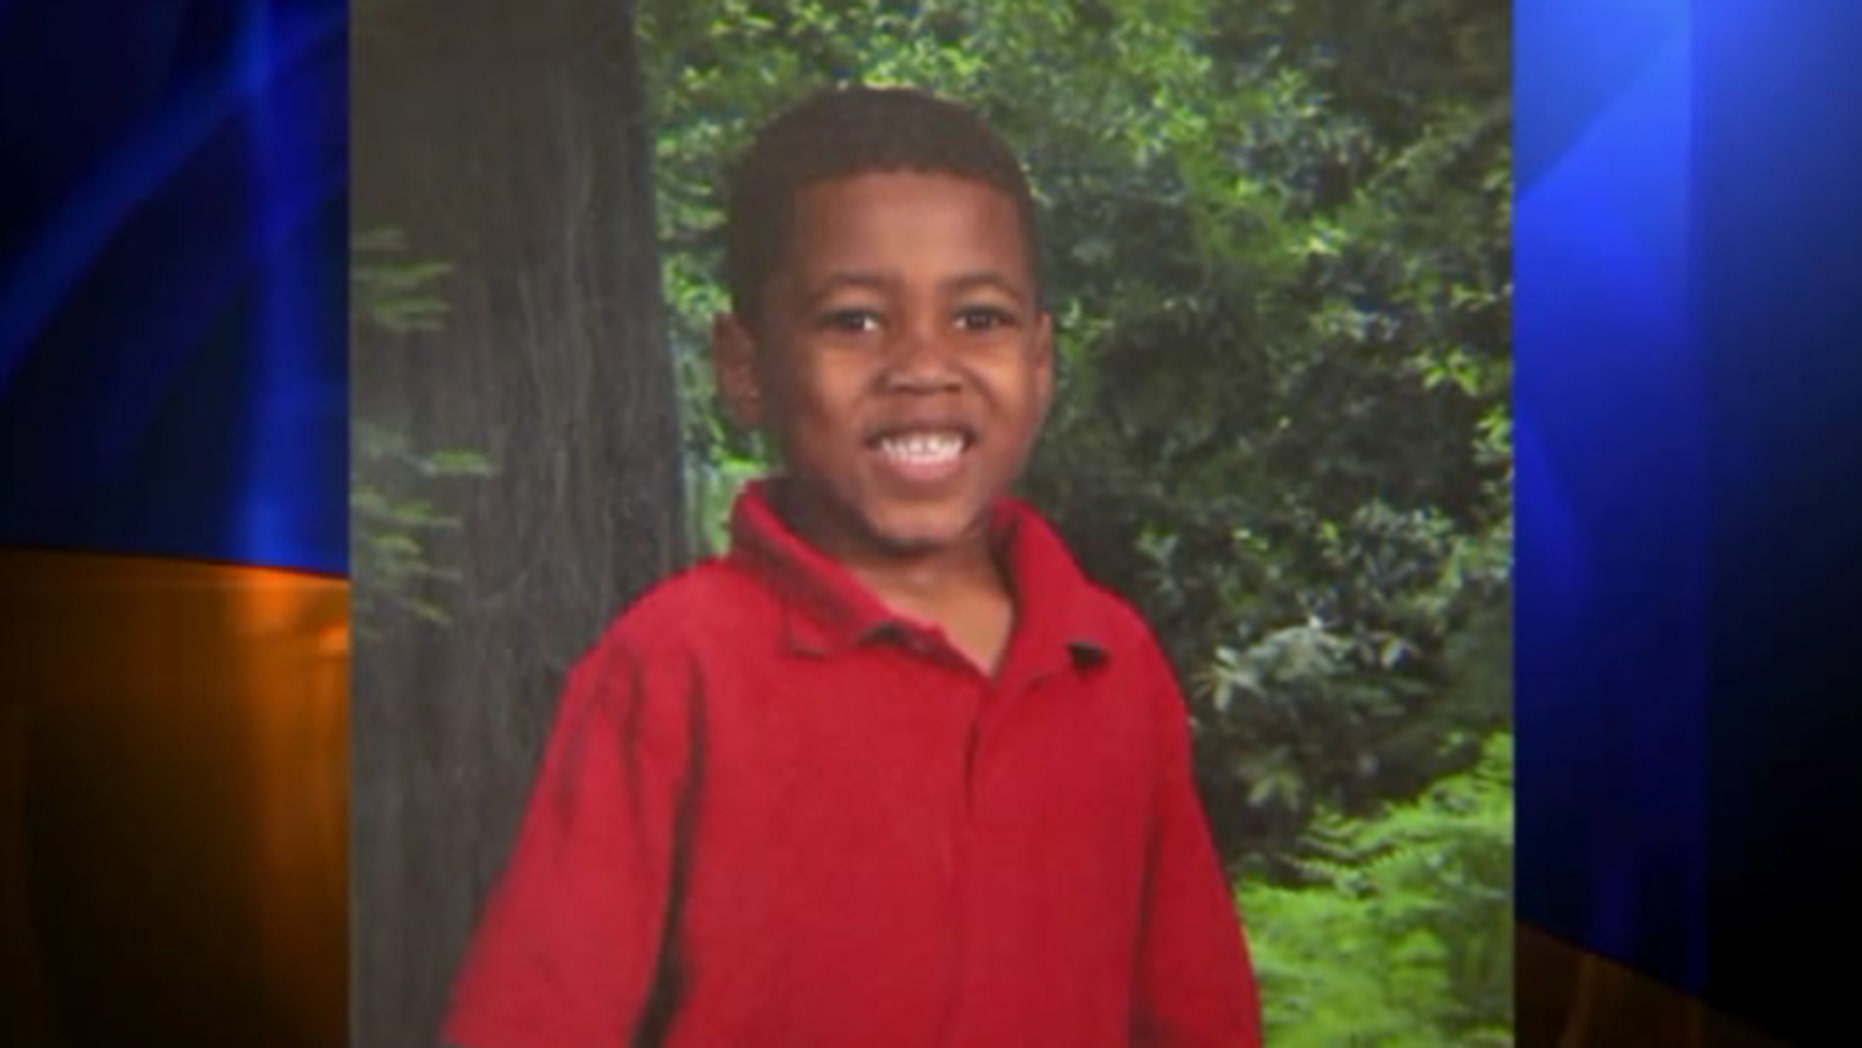 Aaris Conway's mother says the 7-year-old was climbing a tree and got caught up in his karate belt when he tried to jump down.